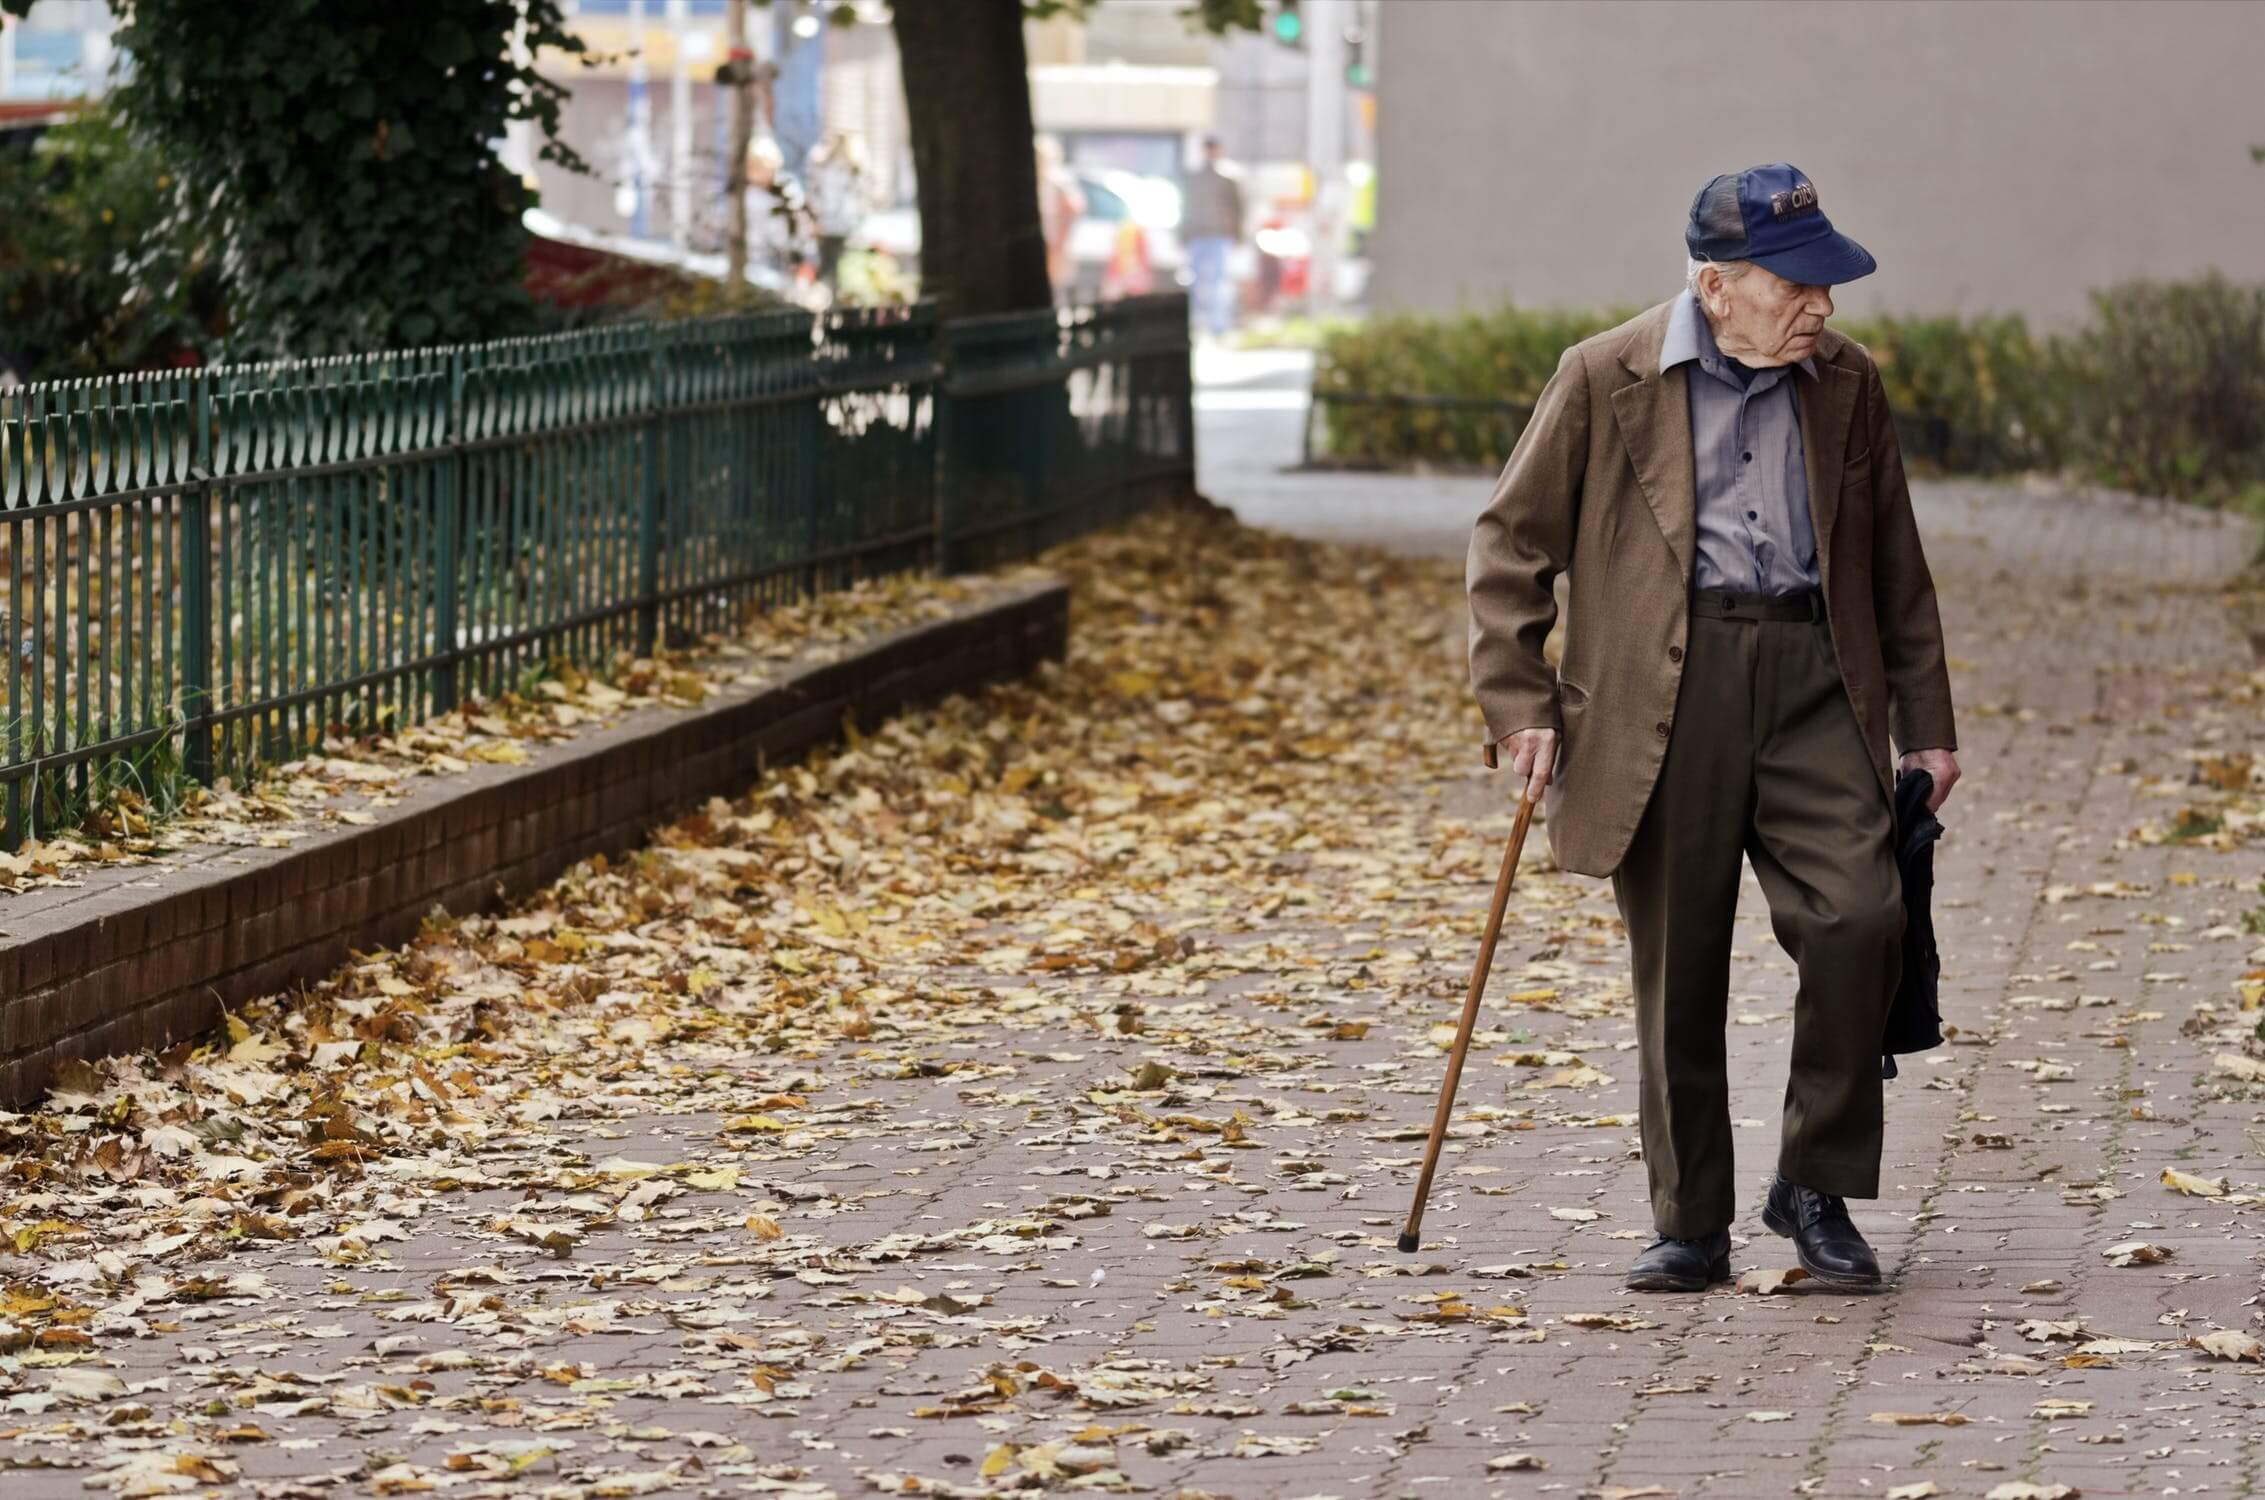 An older man walking and thinking about moving into an assisted living facility